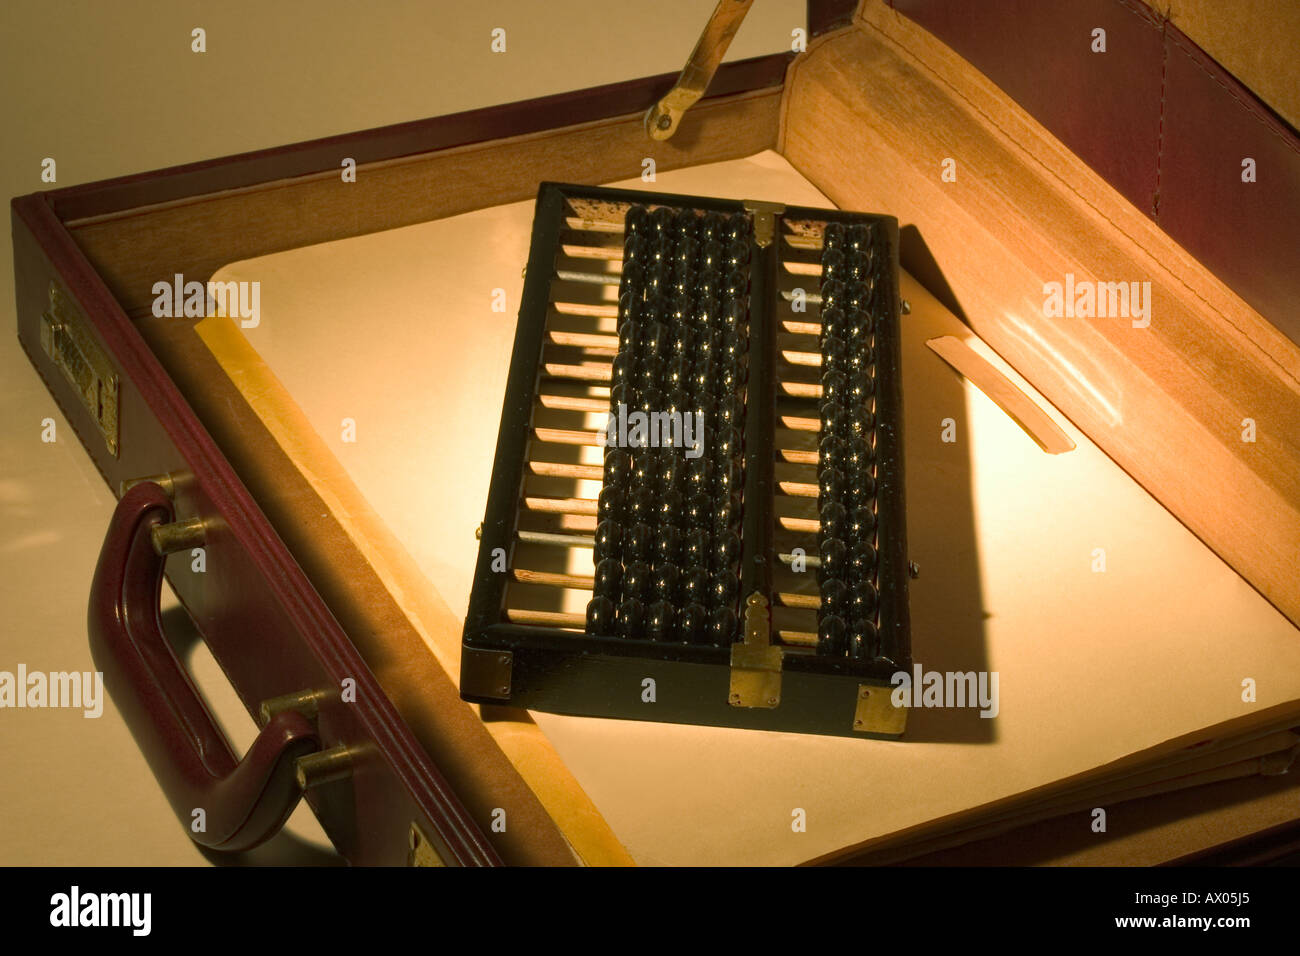 Abacus in Briefcase - Stock Image